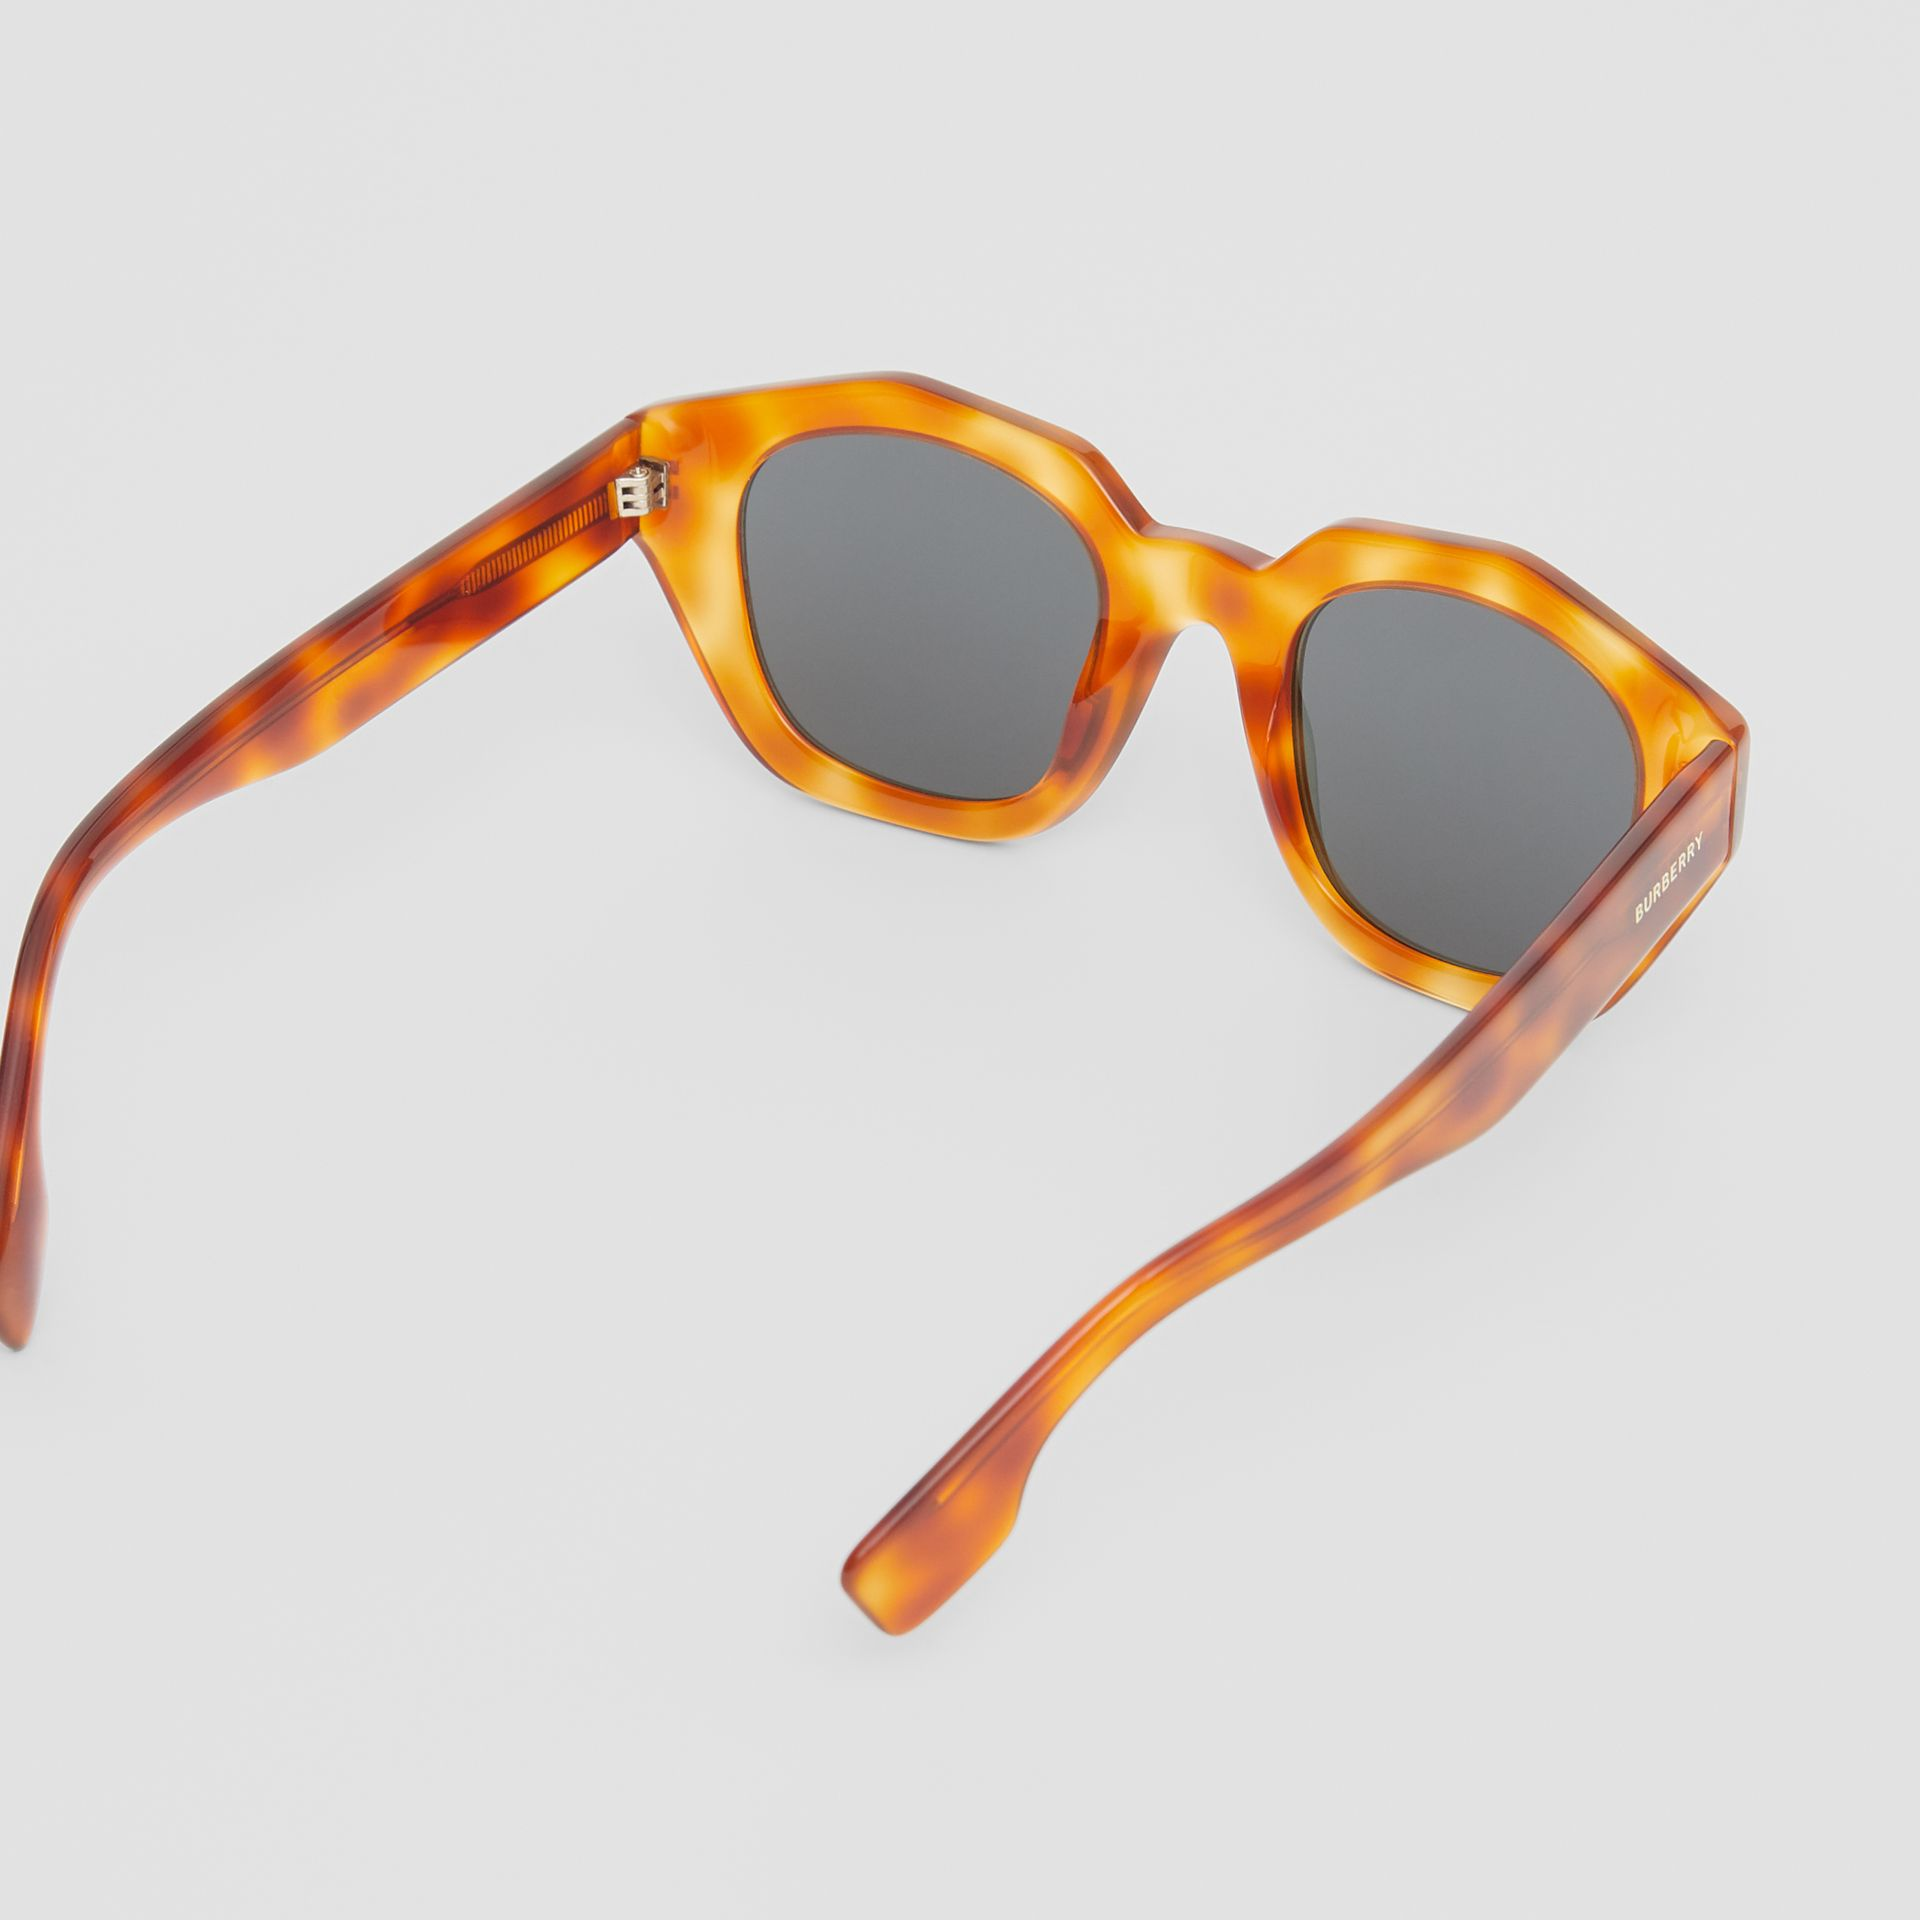 Geometric Frame Sunglasses in Tortoiseshell Amber - Women | Burberry Hong Kong - gallery image 4